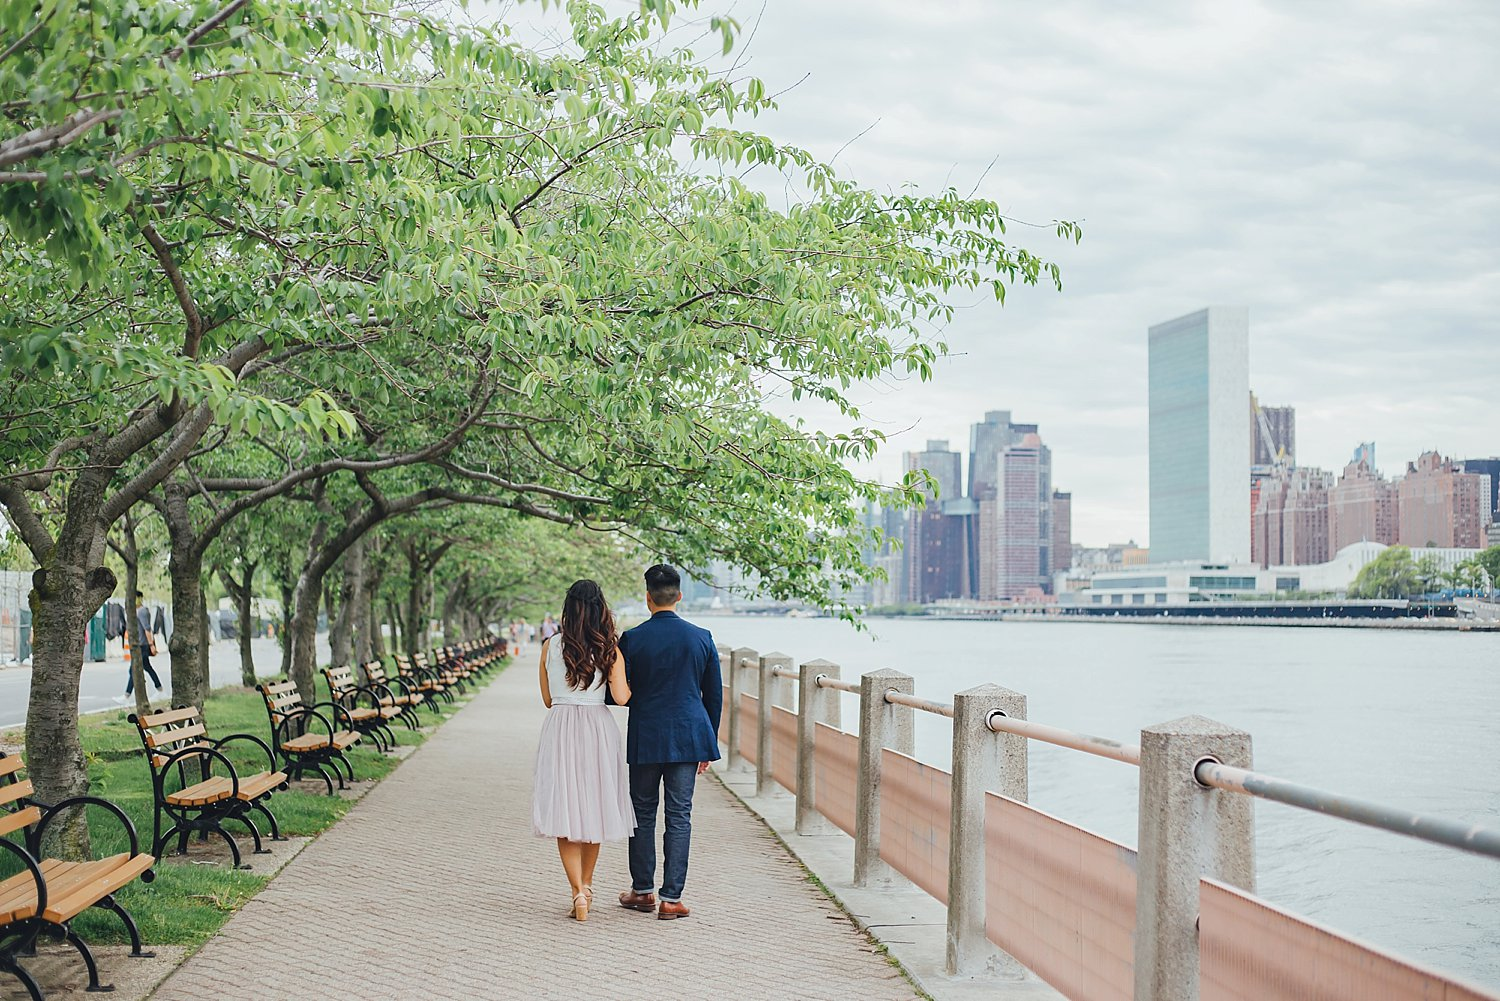 nyc-wedding-photography-nj-tri-state-cinematography-intothestory-by-moo-jae_0350.jpg